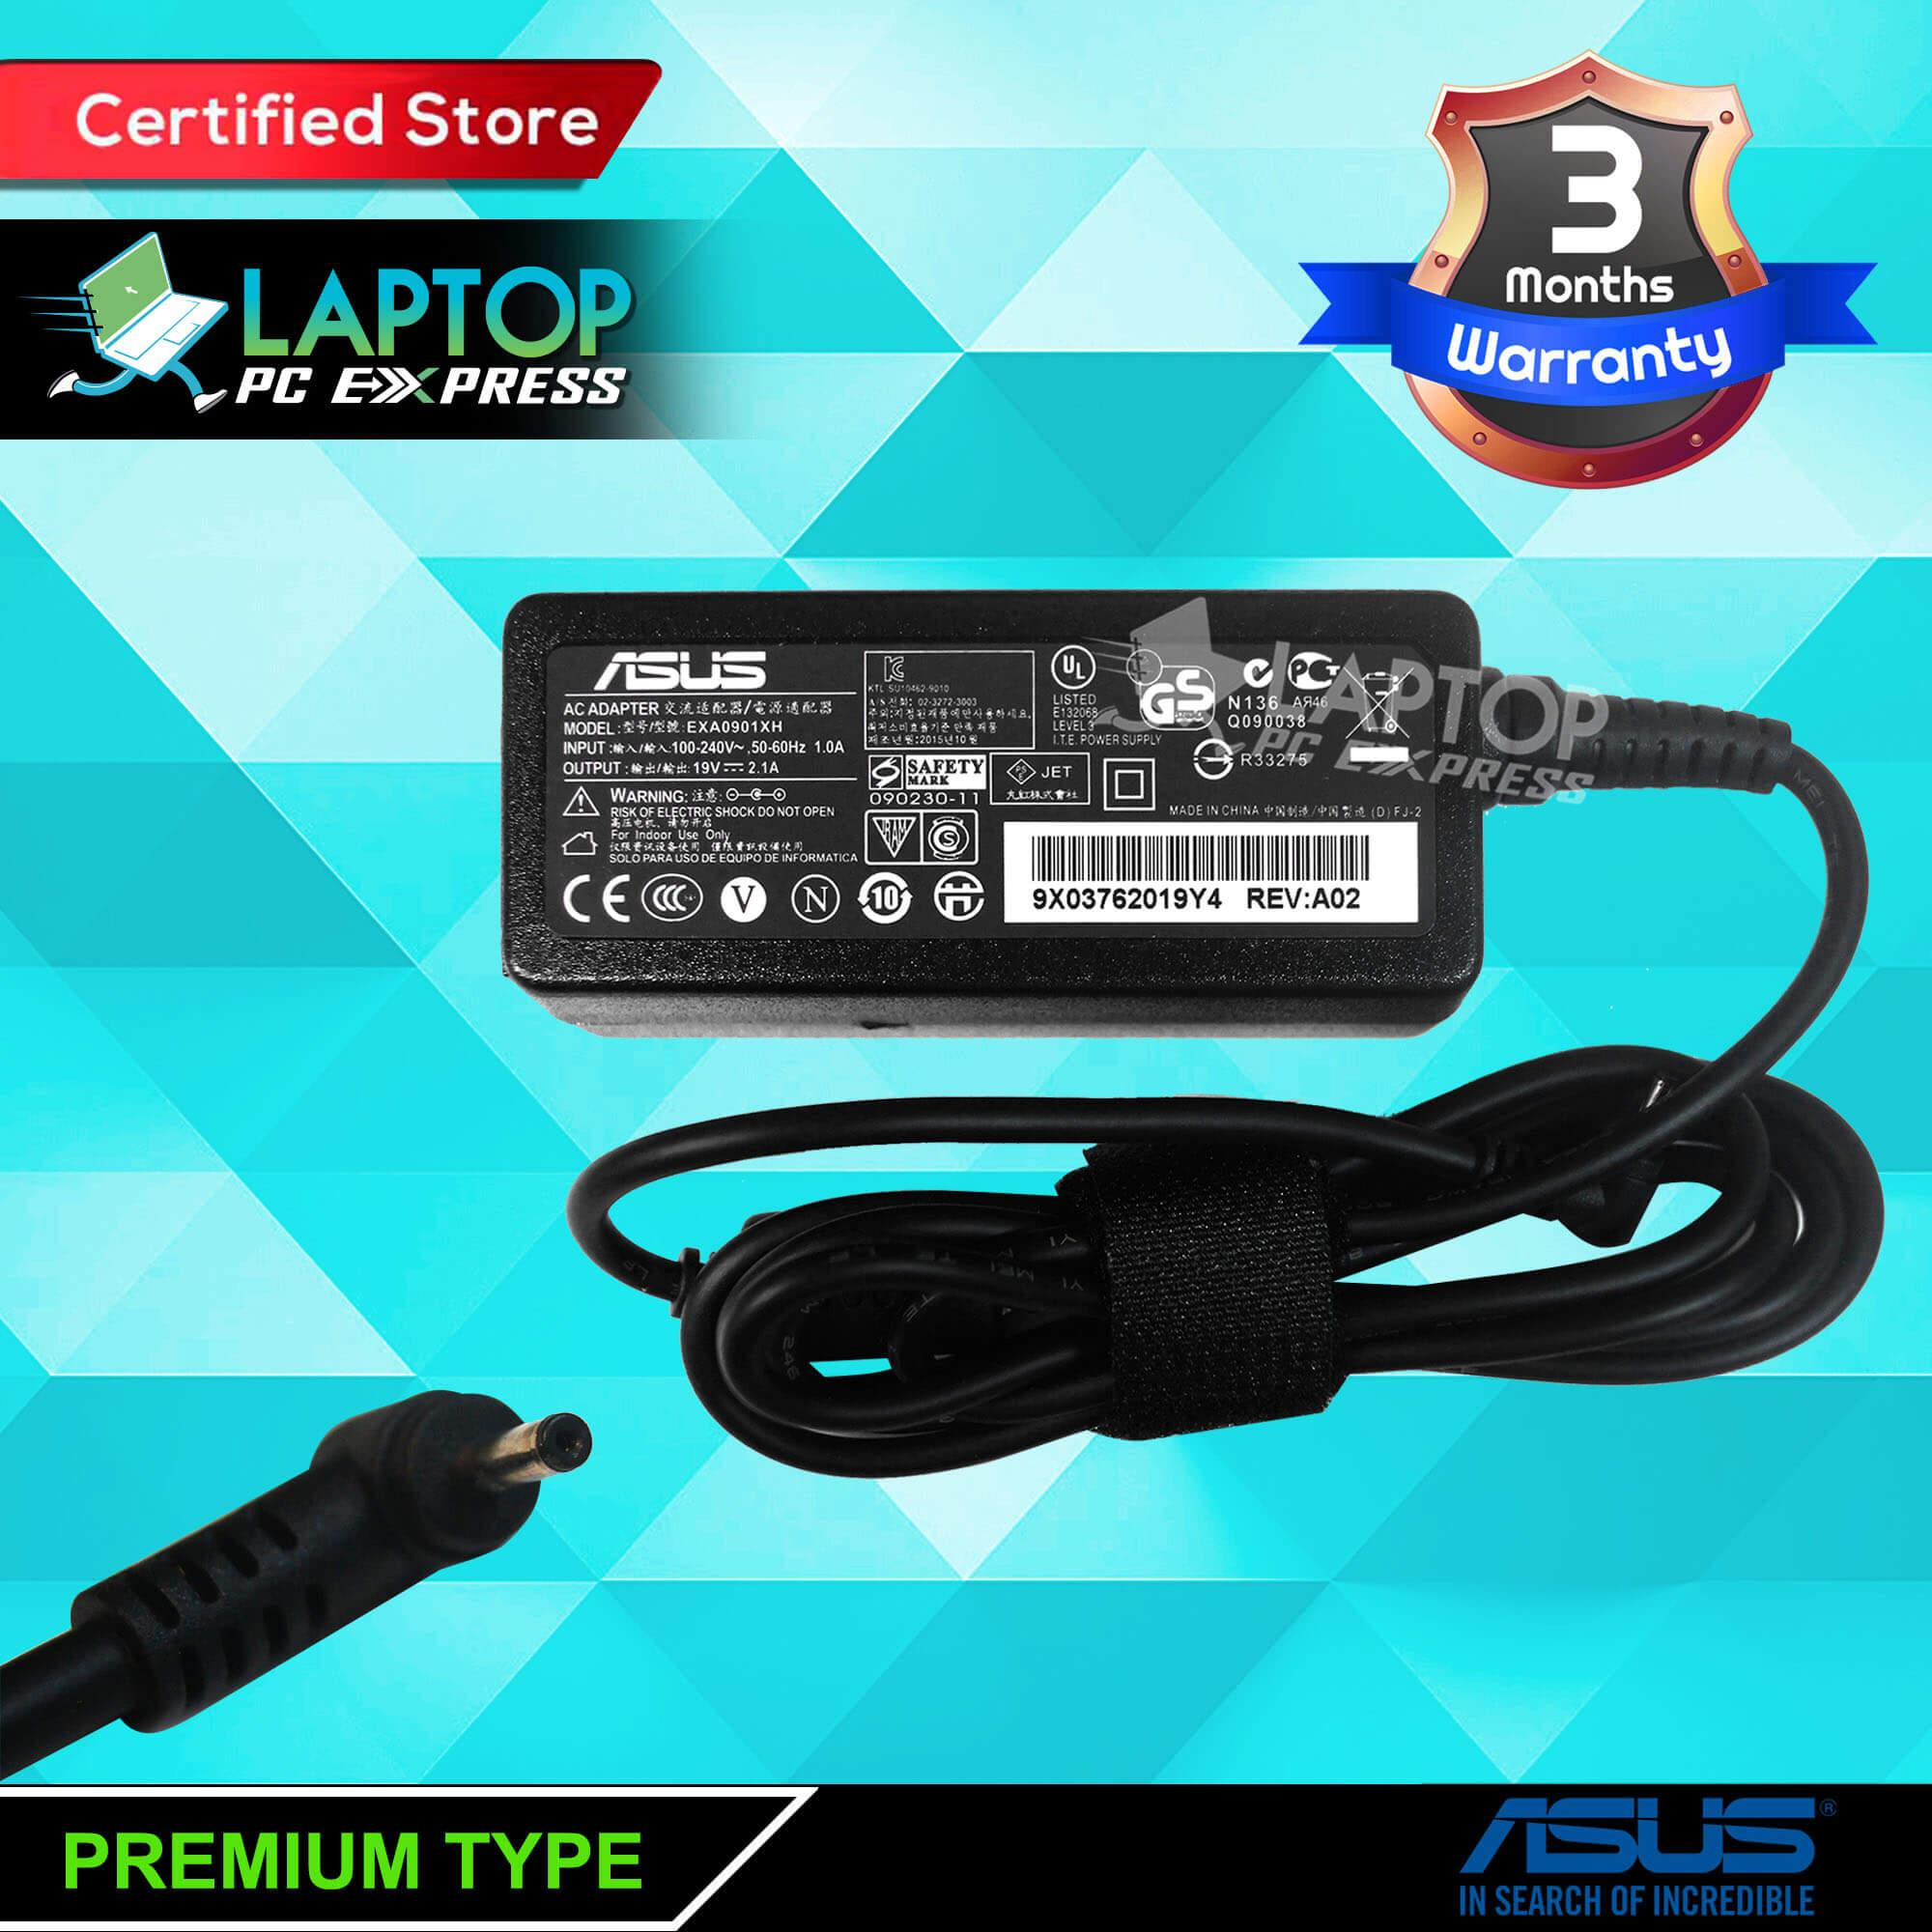 Asus Computer Accessories Philippines Pc For Sale Adaptor Charger Laptop X401 X401a X401u 19v 342a Original 21a 25mm X 07mm Eeepc Seashell 1008 1008p